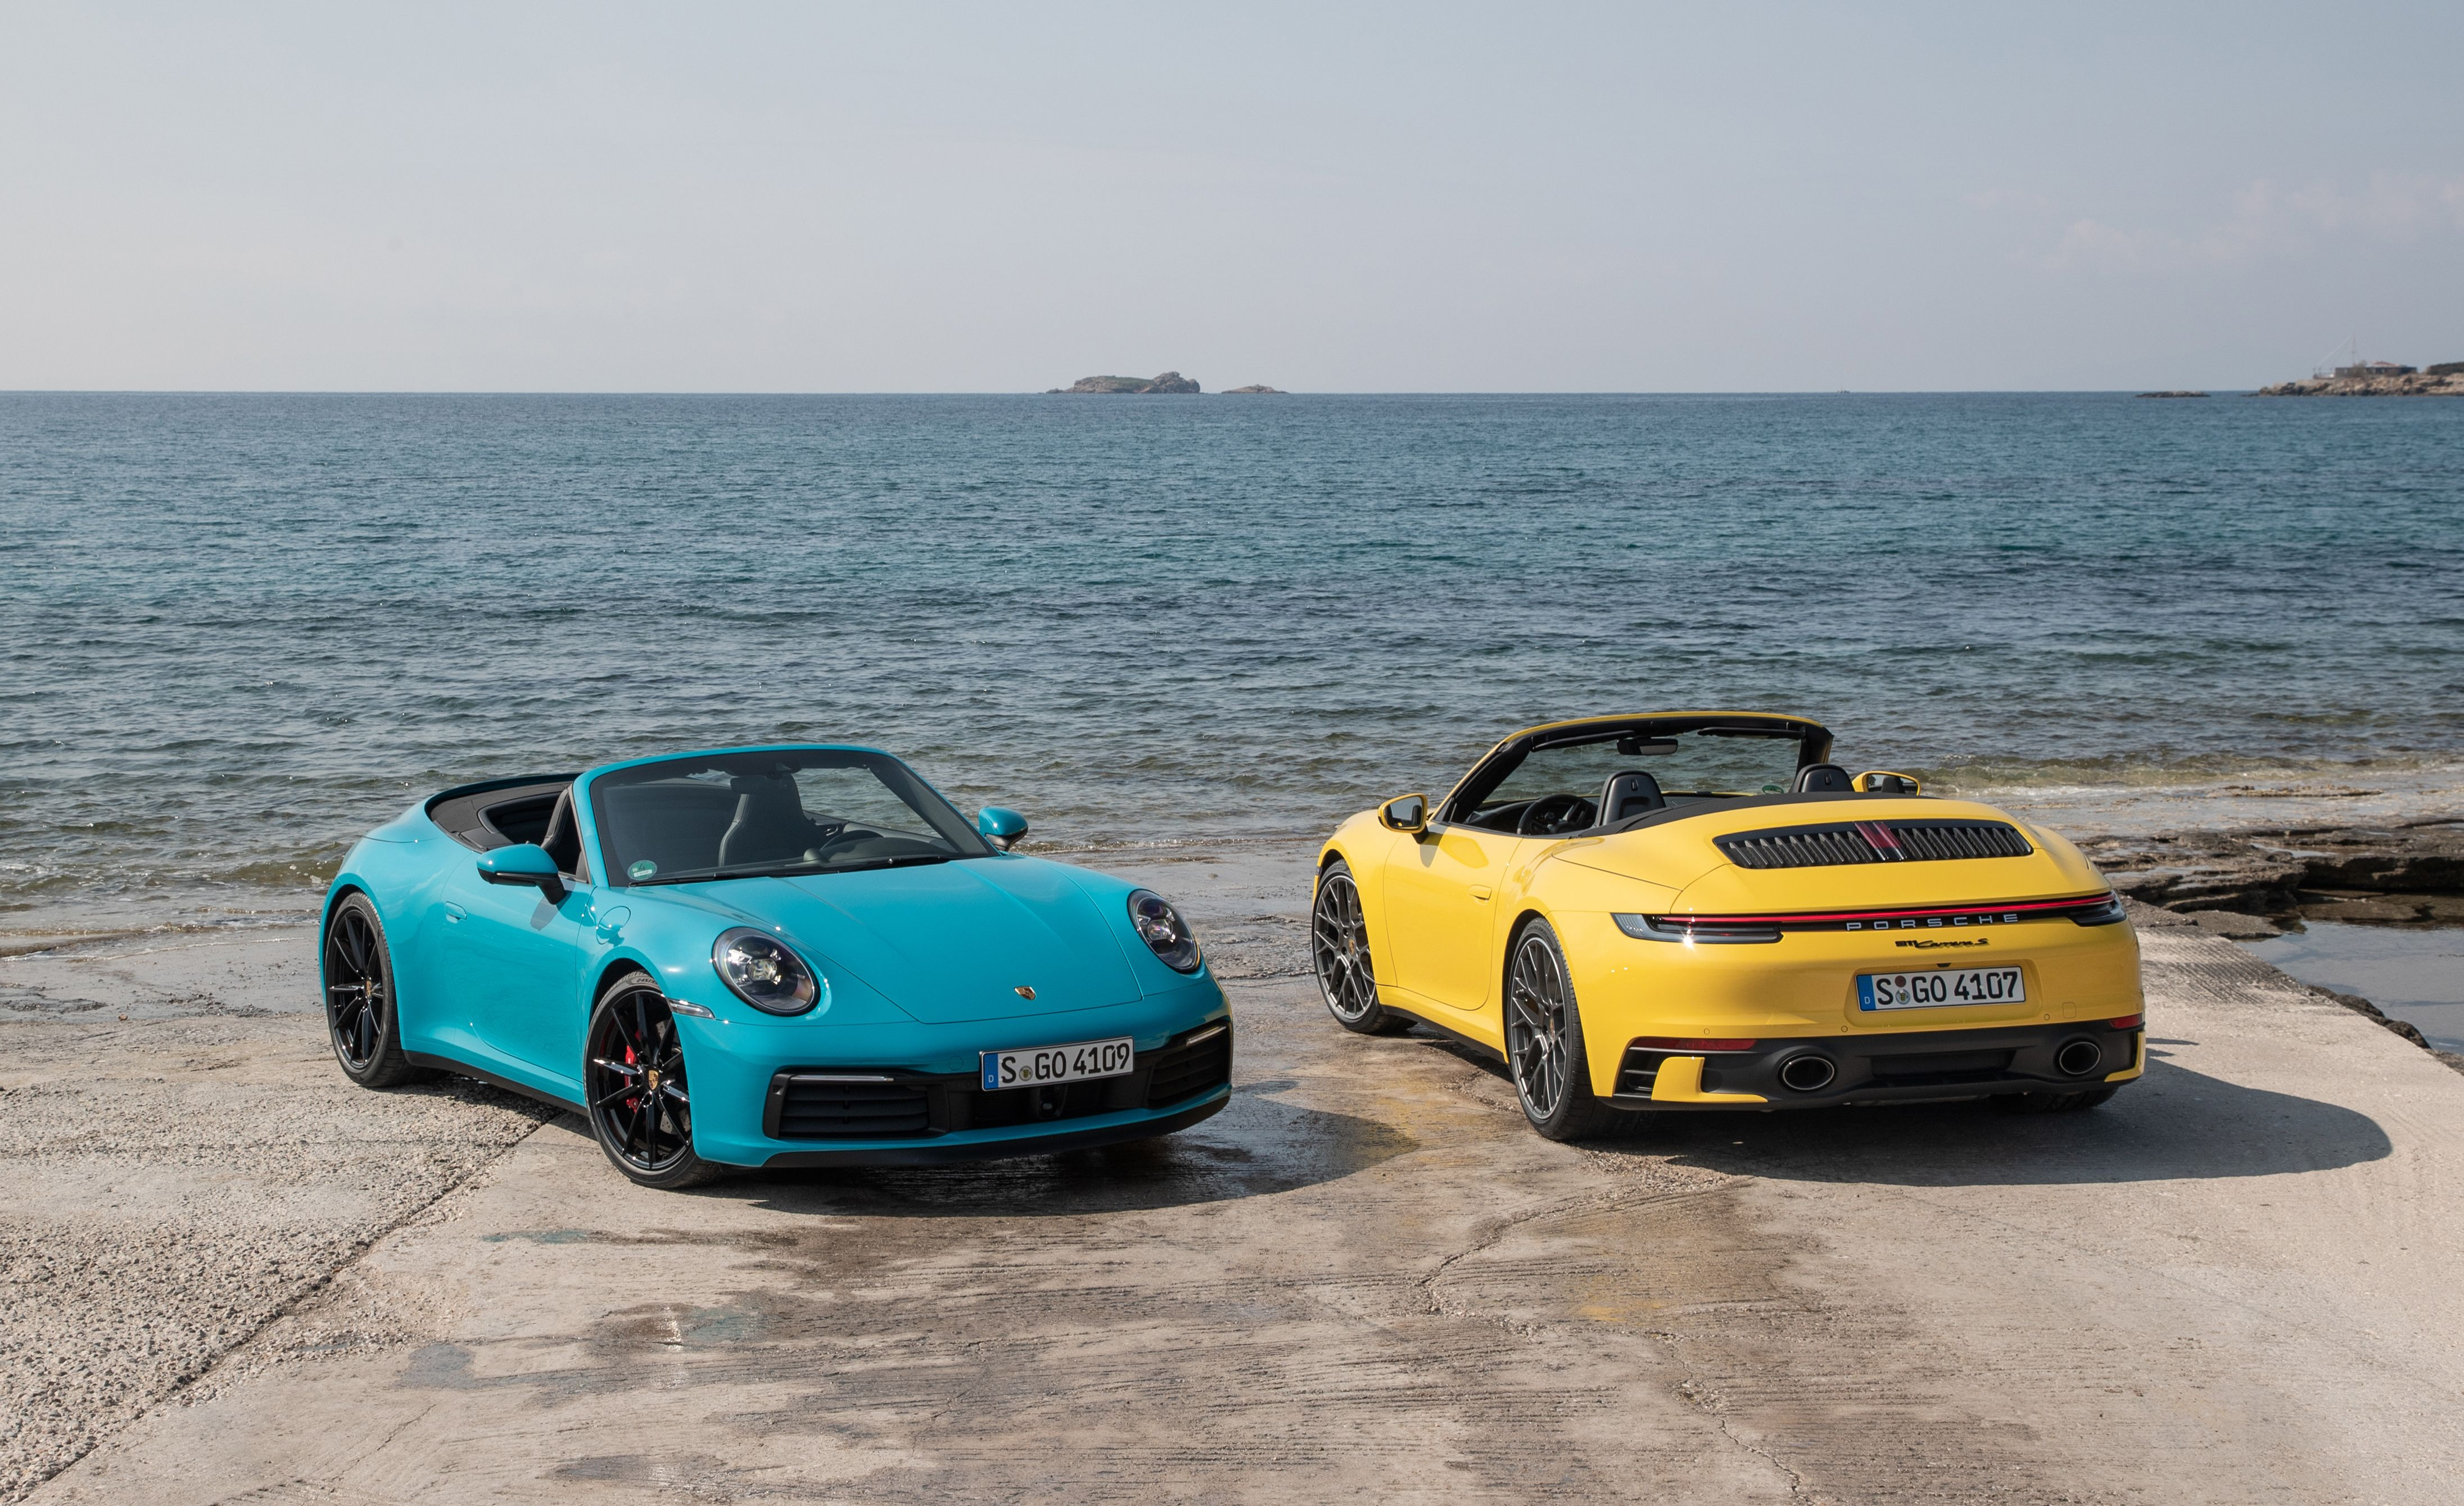 2020 Porsche 911 Carrera S Cabriolet Open Air Driving Therapy